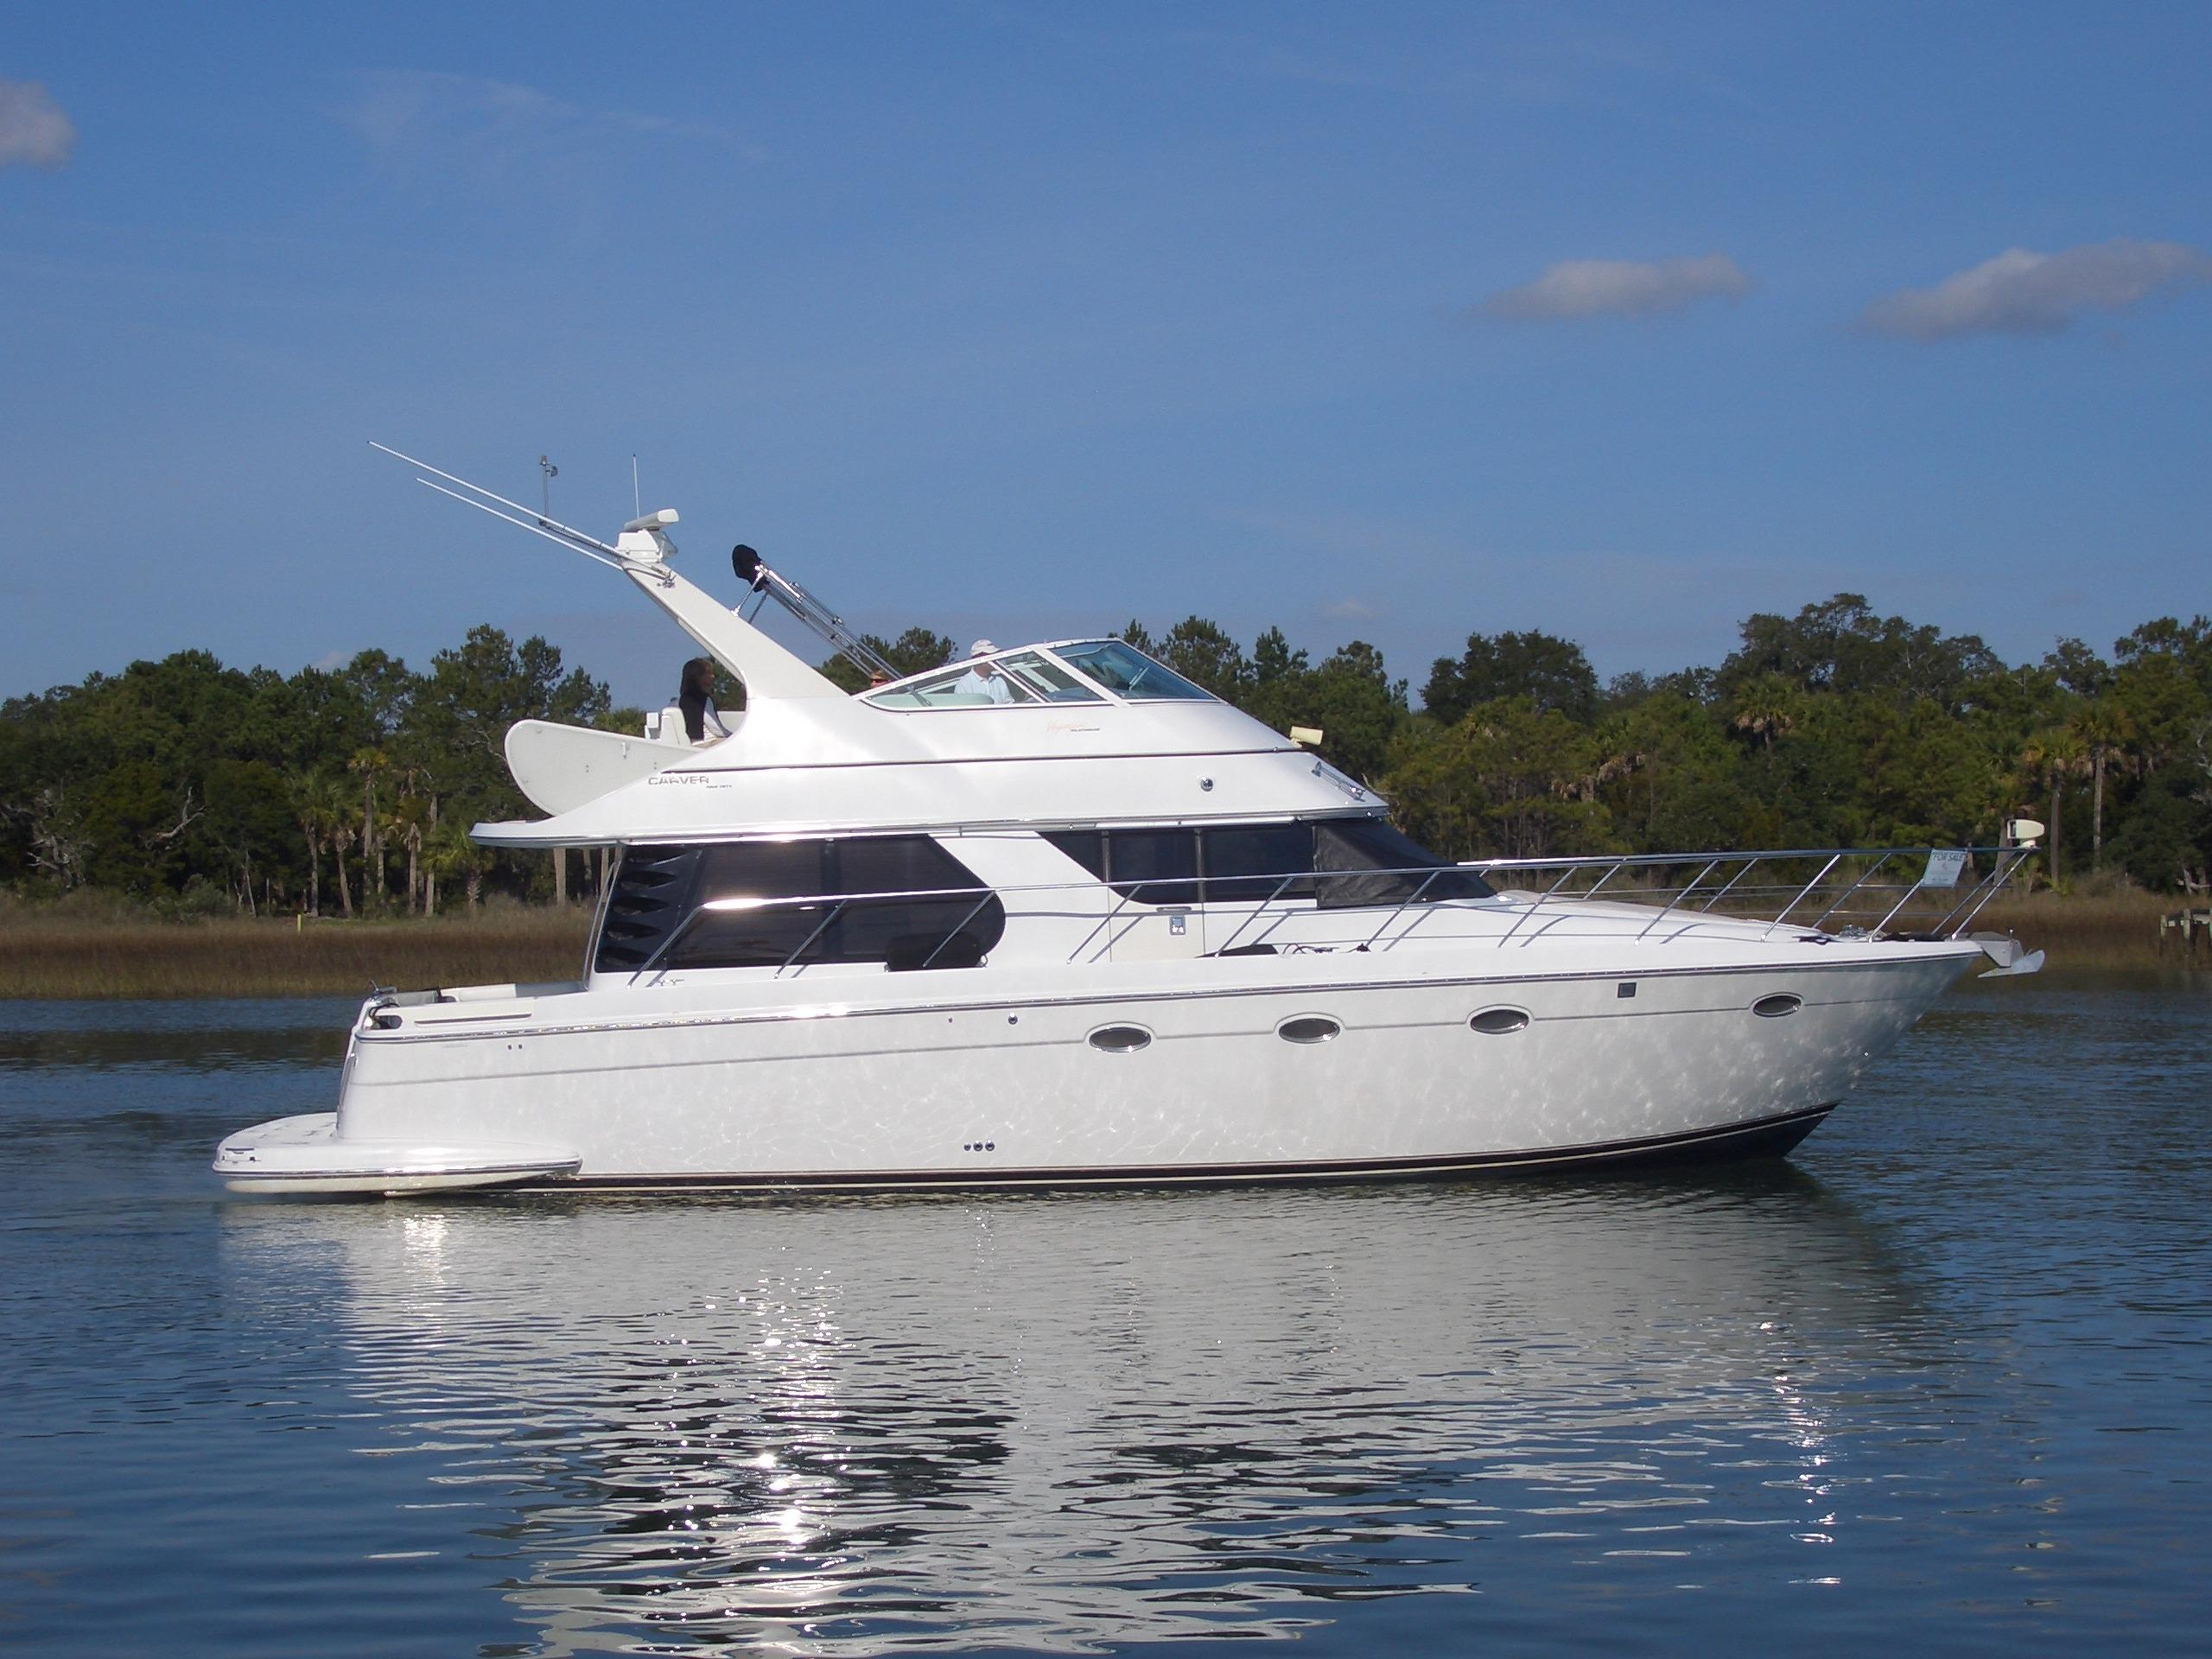 2000 CARVER YACHTS 450 Voyager Power Boat For Sale - www ...